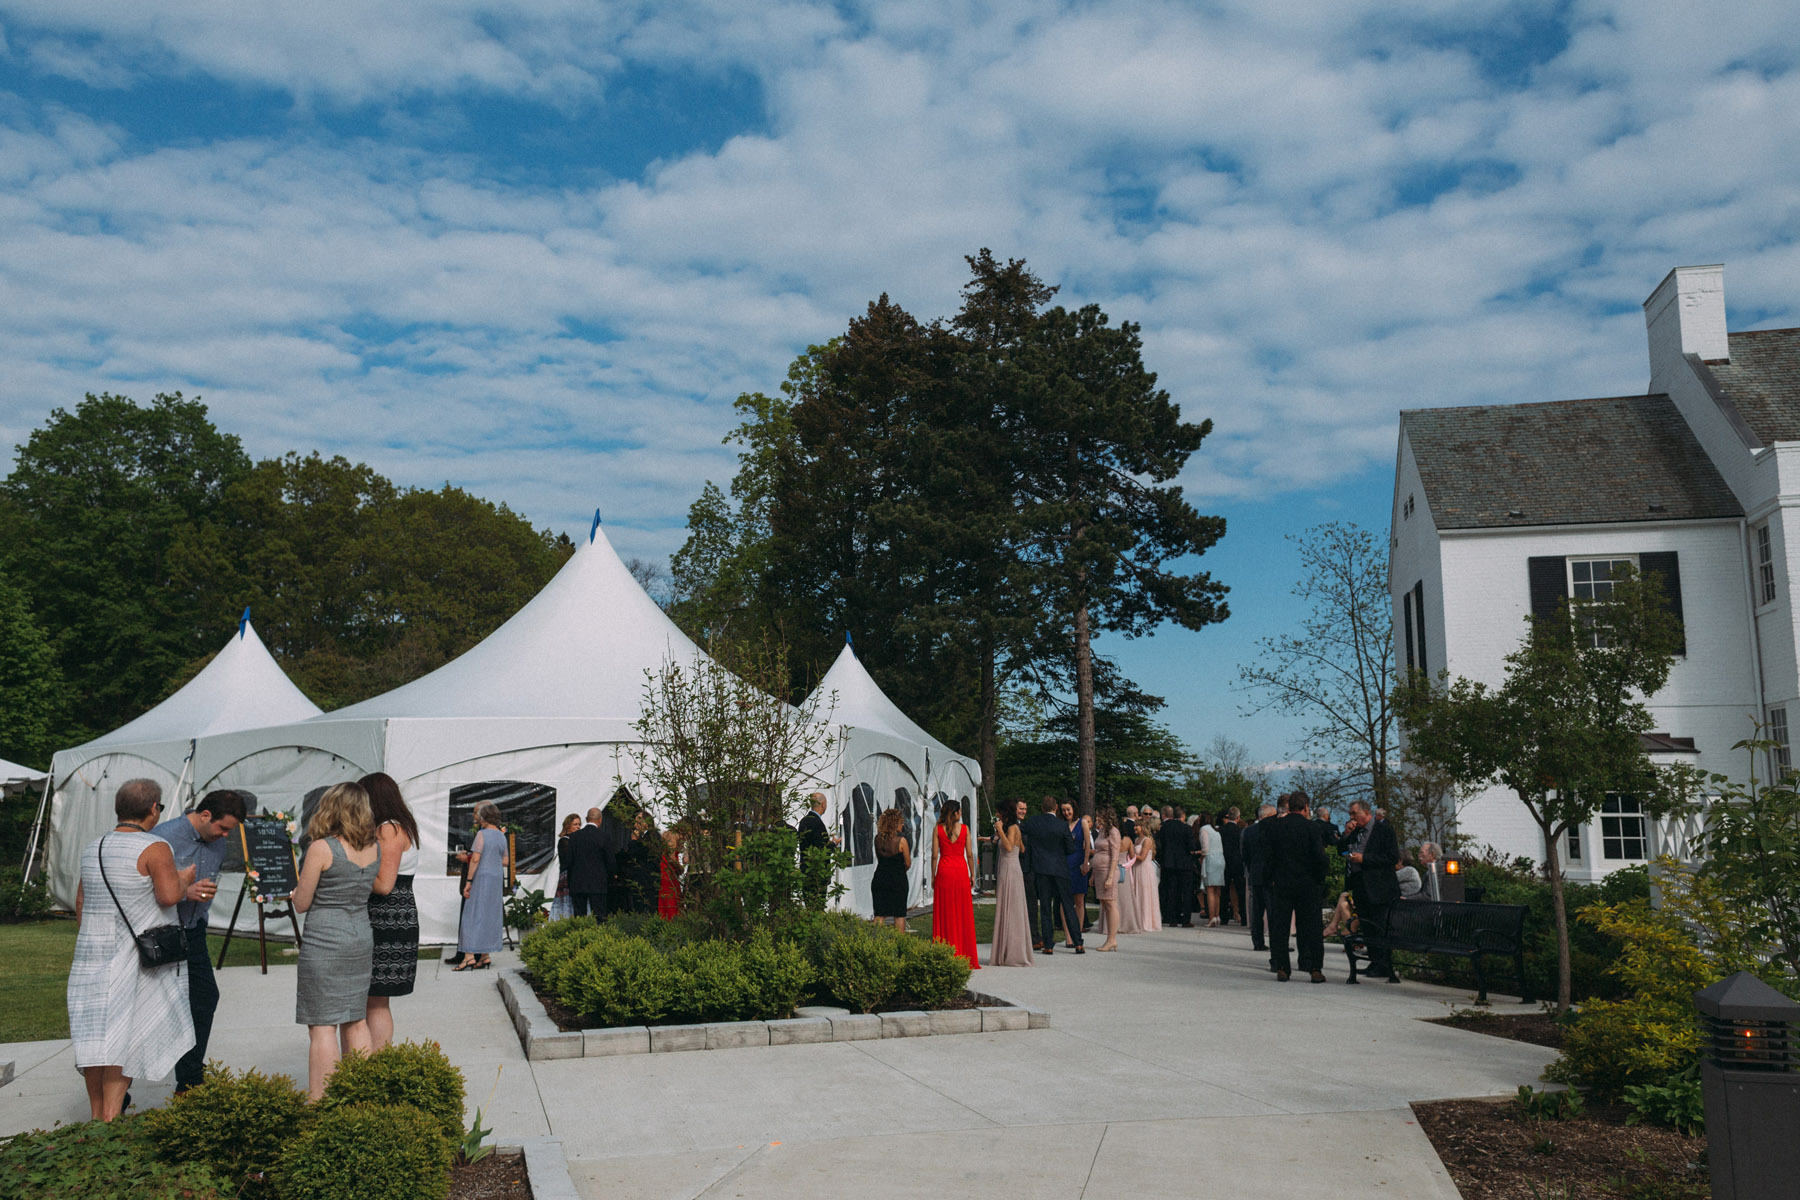 Harding-Waterfront-Estate-Mississauga-wedding-photography-by-Sam-Wong-of-Artanis-Collective_31.jpg